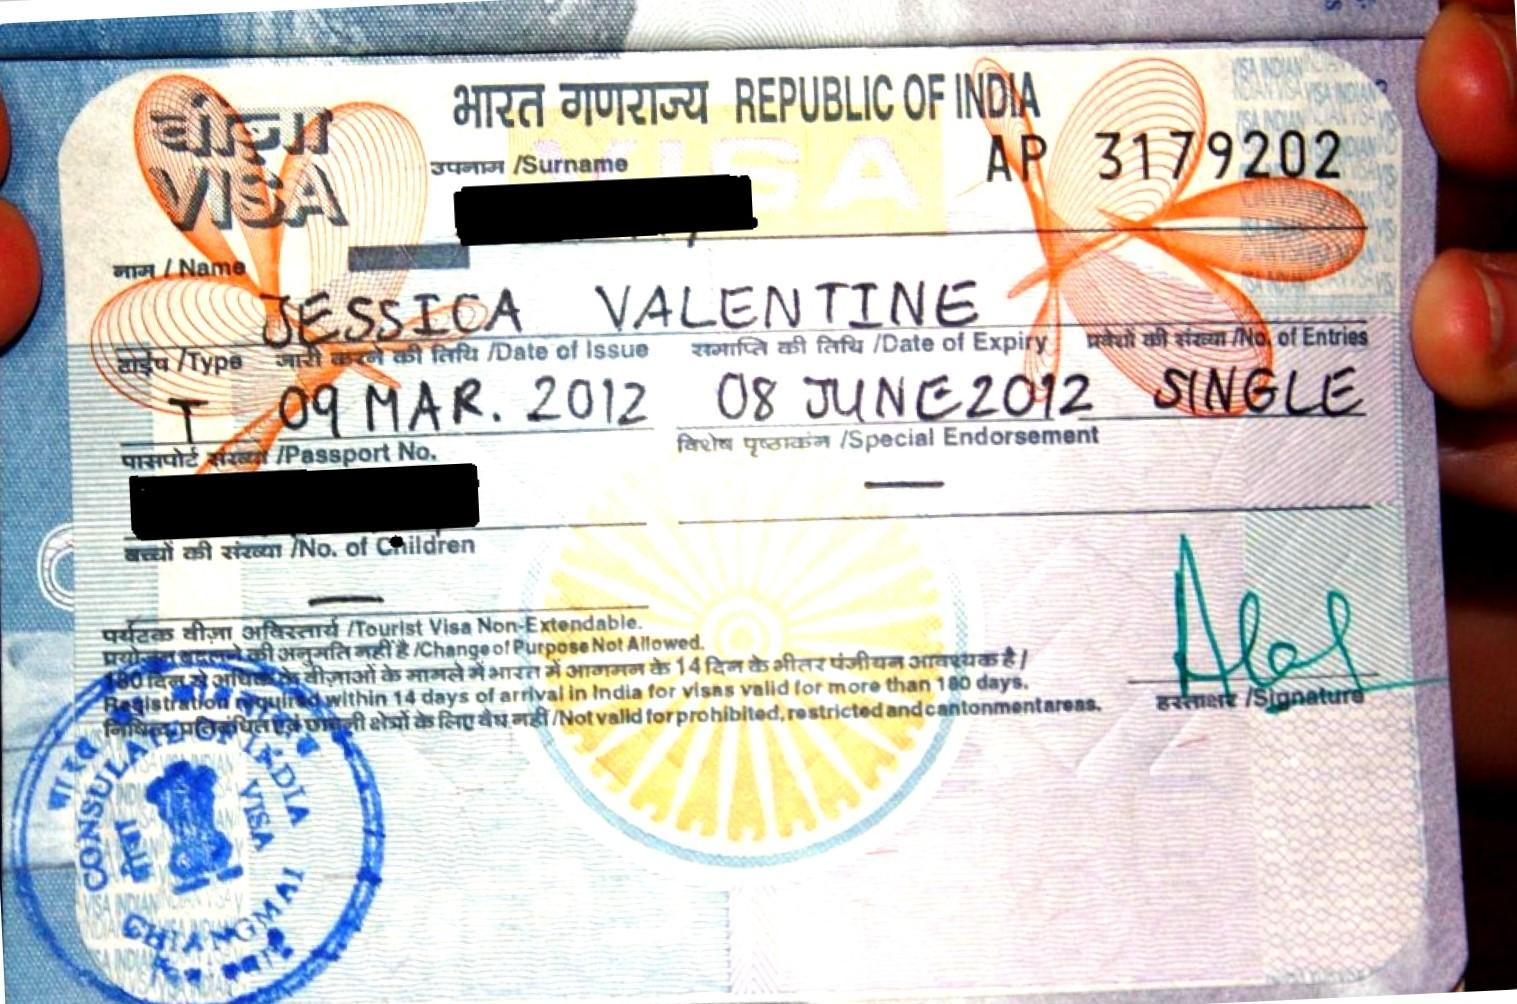 How to issue the visa to India, being in Thailand